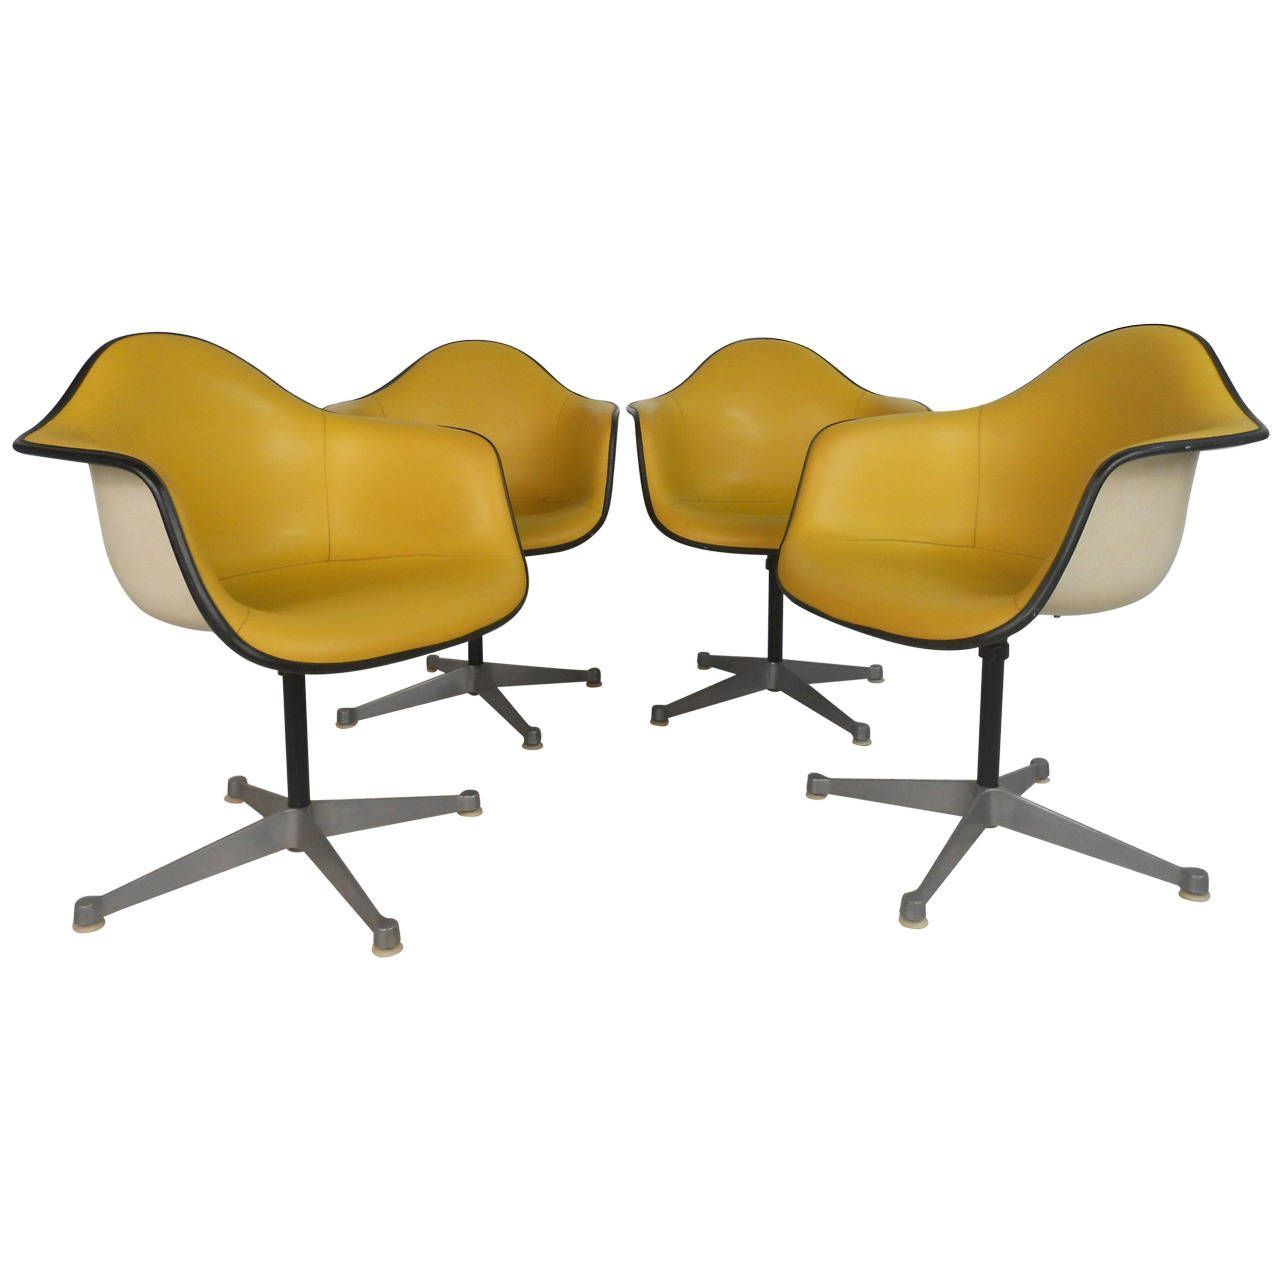 Pair Charles Eames for Herman Miller Bucket Chairs   Bucket chairs ...